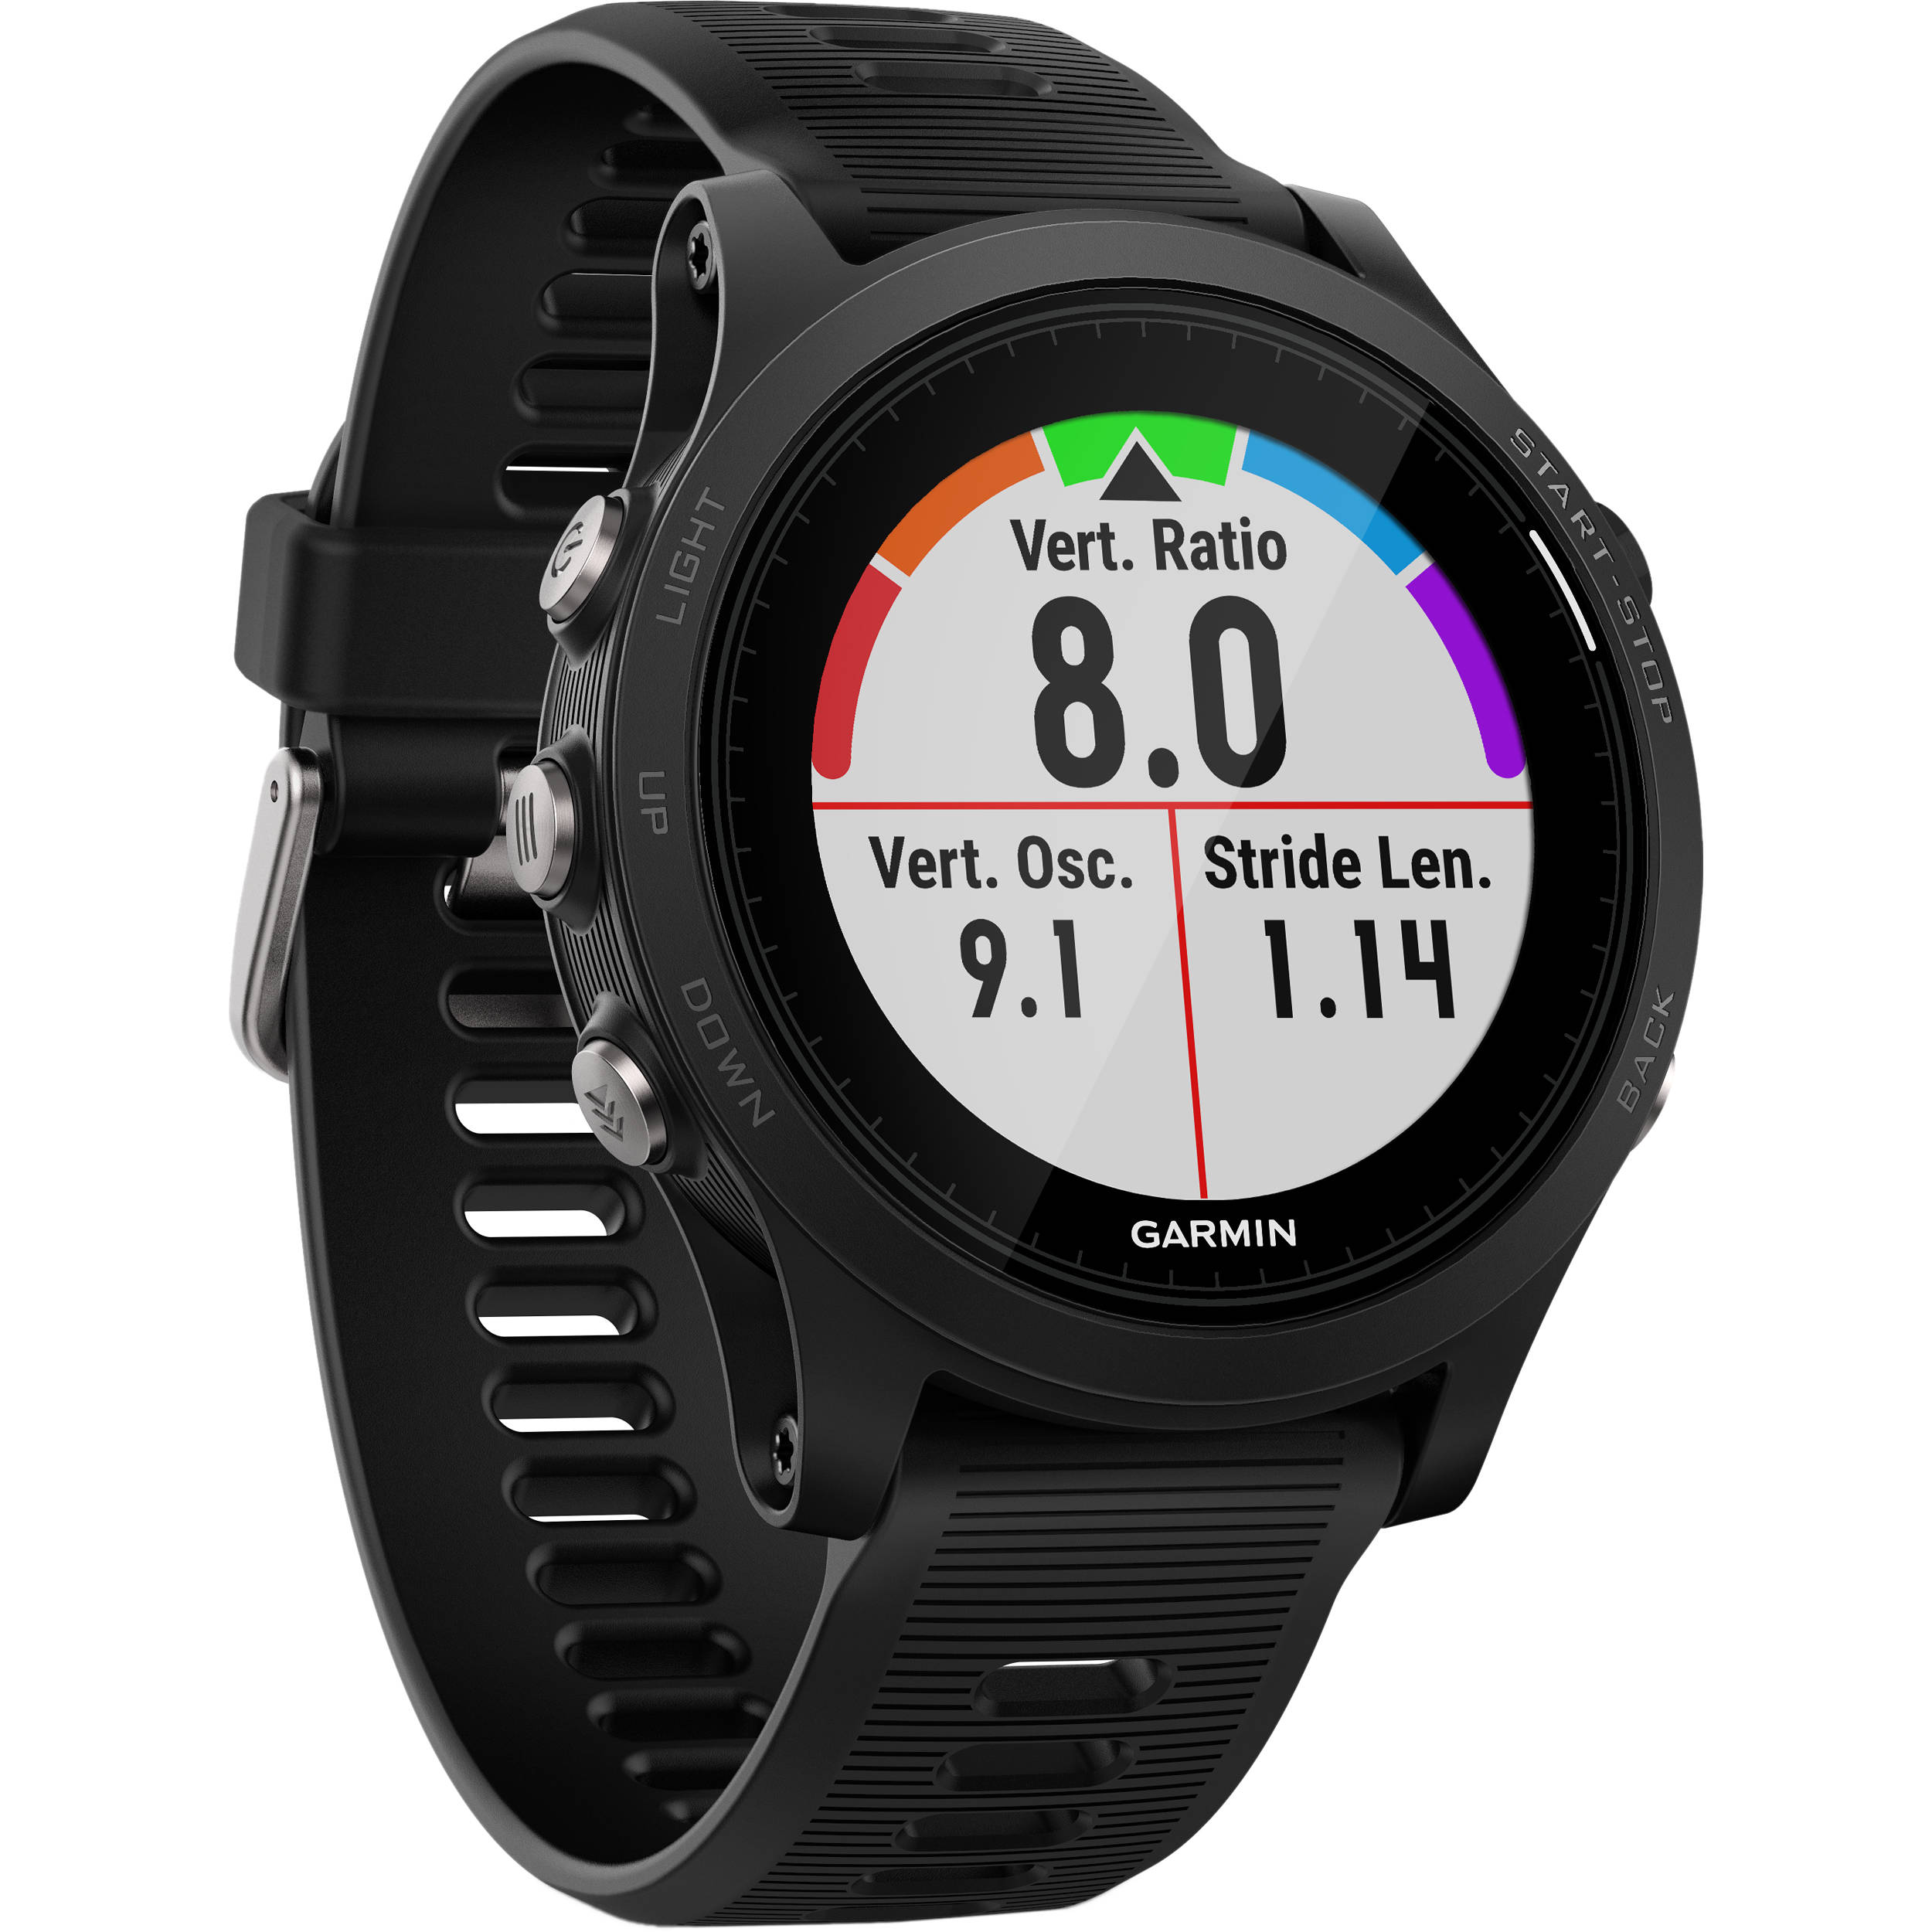 2b6100b3a Garmin Forerunner 935 Sport Watch (Black) 010-01746-00 B H Photo